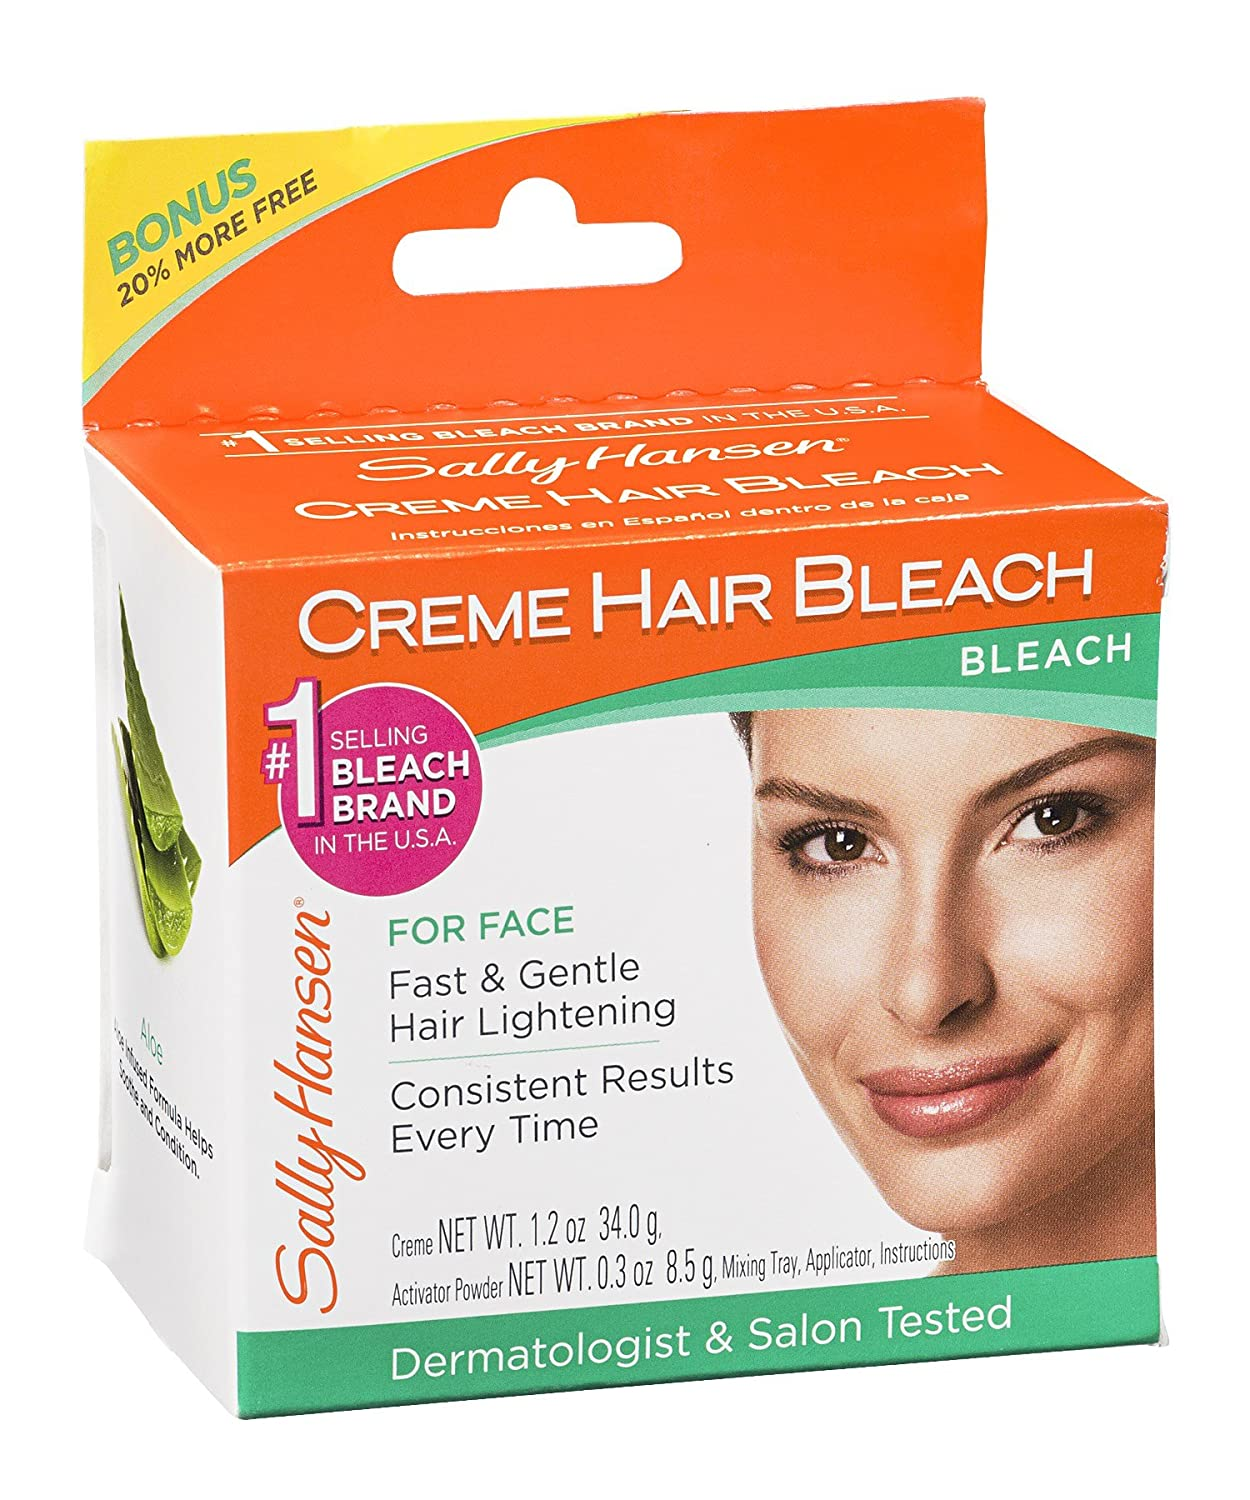 Creme Hair Bleach for Face Fast & Gentle With Soothing Aloe by Sally Hansen for Women - 1 Pack Bleach For Face